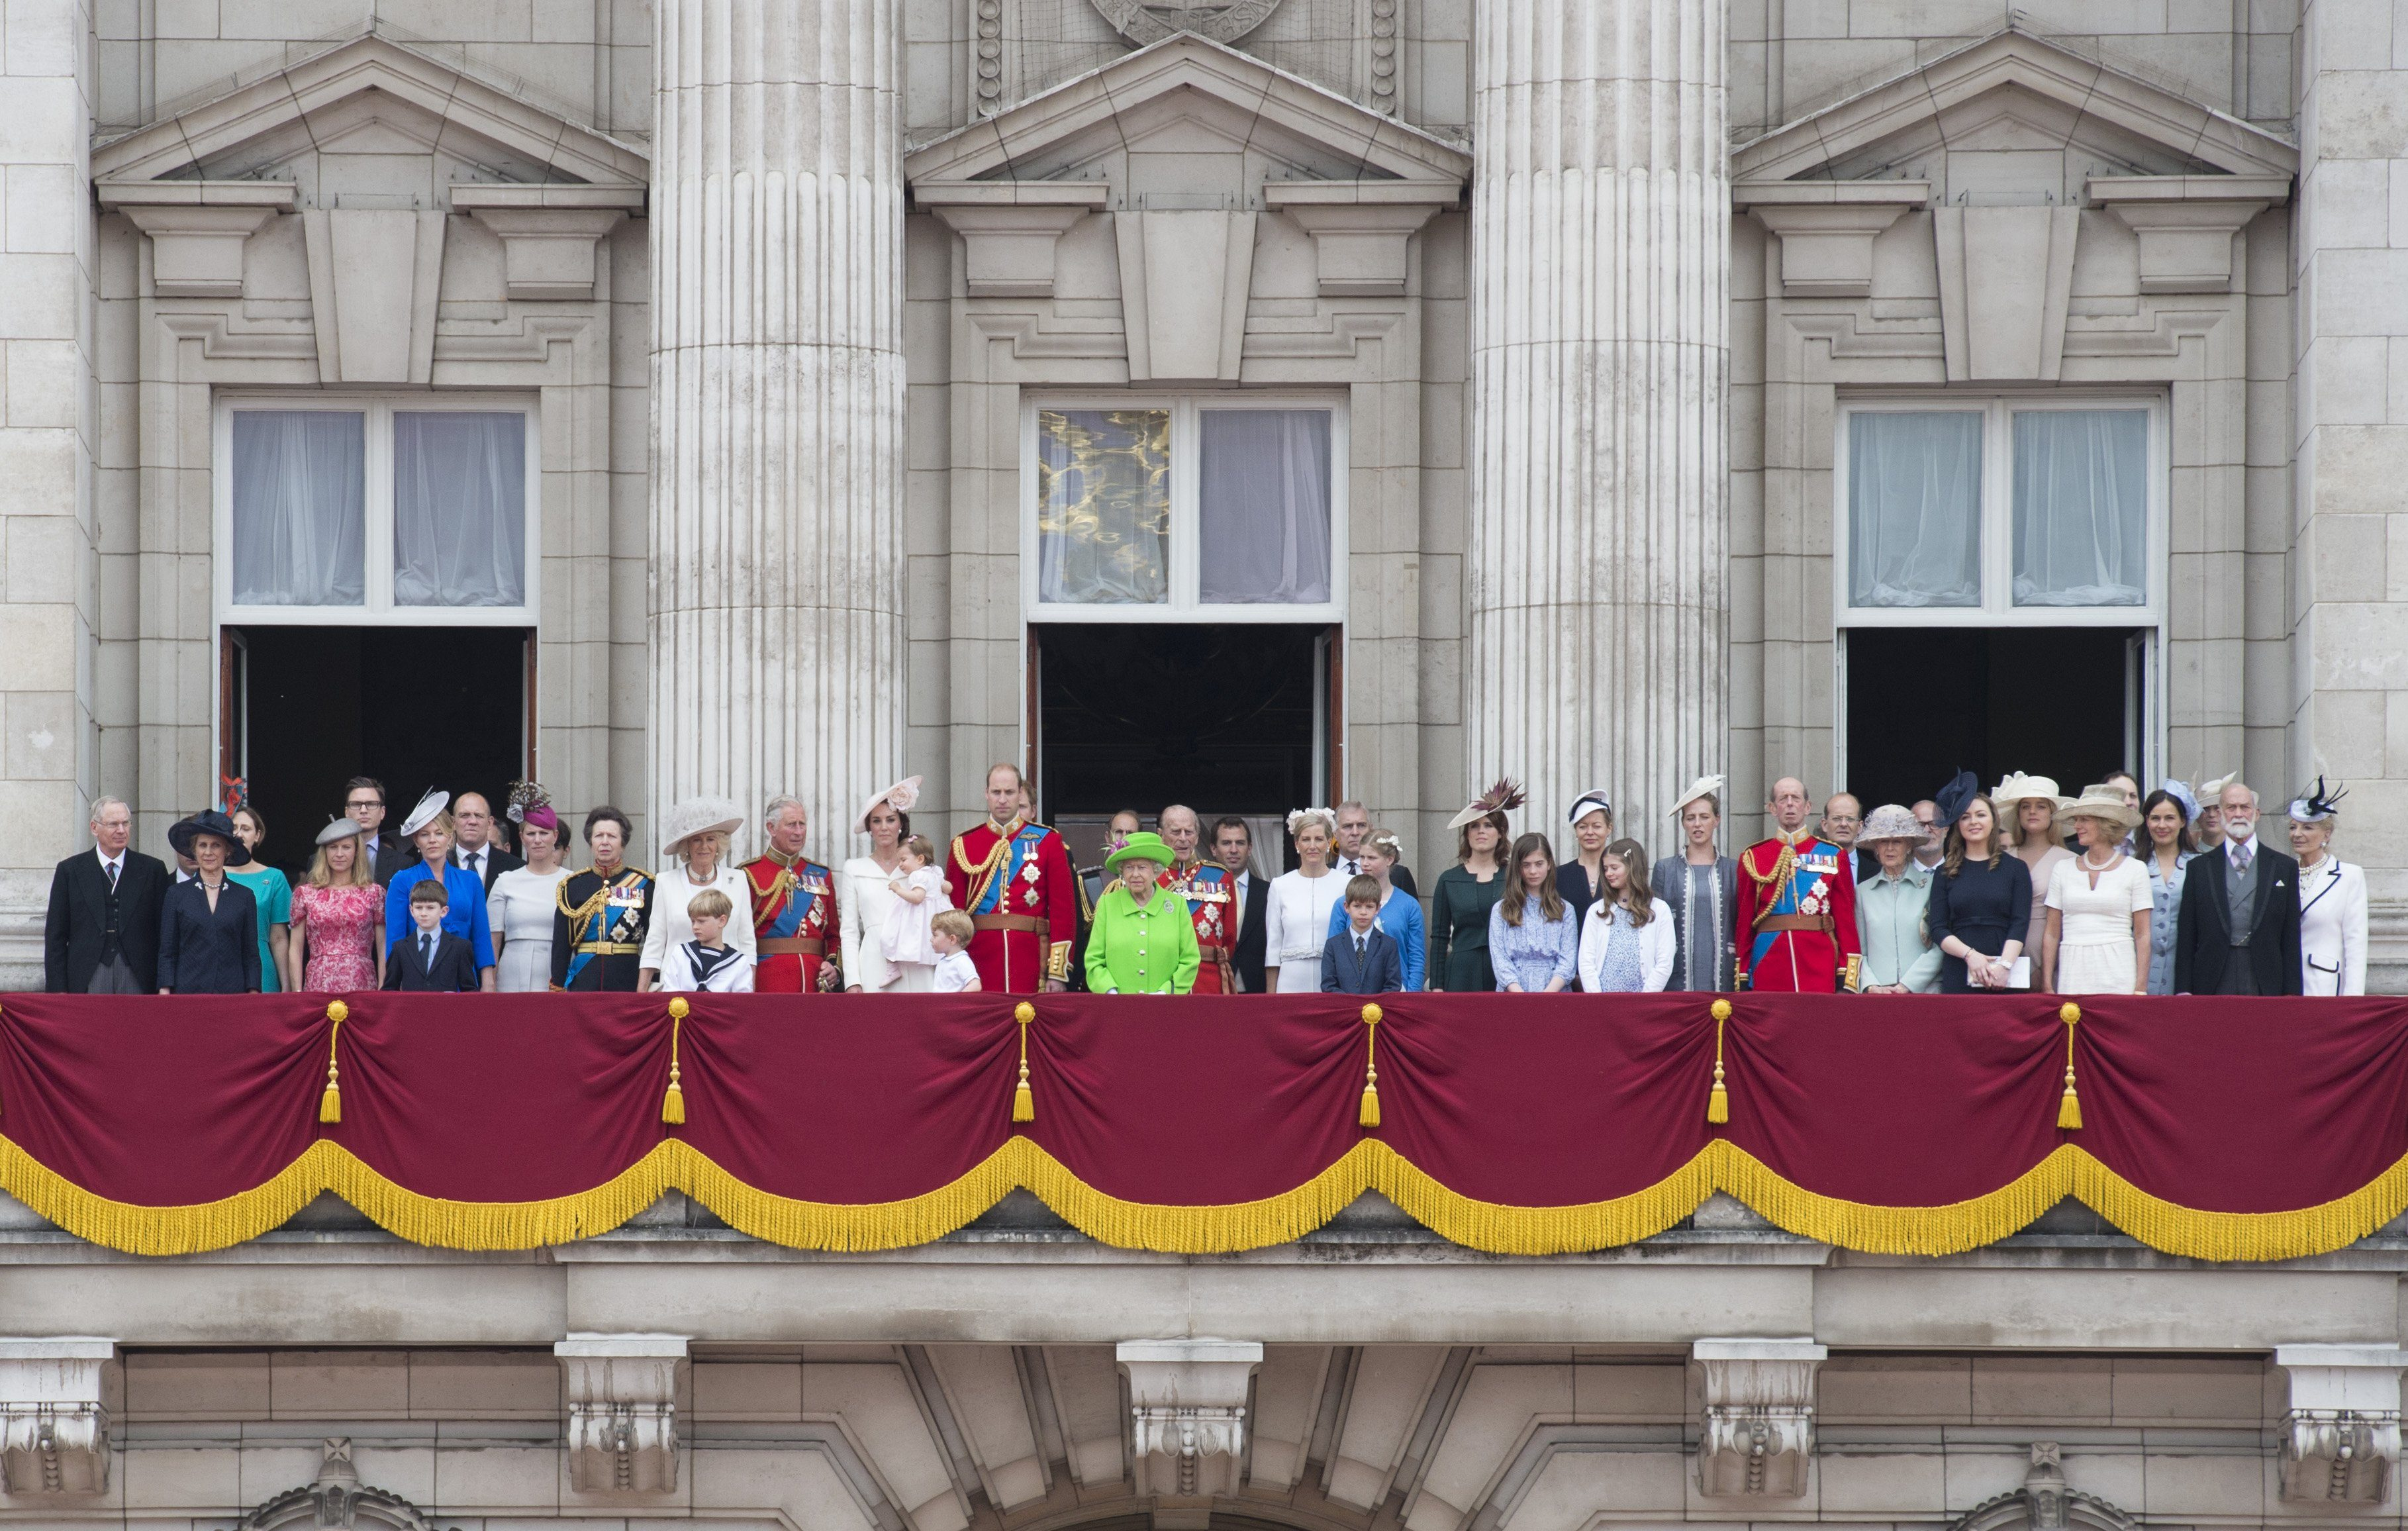 Mike Tindall, Zara Tindall, Princess Anne, Camilla Duchess of Cornwall, Prince Charles, Catherine Duchess of Cambridge, Princess Charlotte of Cambridge, Prince George, Prince William, Prince Harry, Queen Elizabeth II, Prince Philip, Peter Phillips, Sophie Countess of Wessex, Prince Edward Prince Edward, Lady Louise Windsor, James Viscount Severn, Princess Beatrice, Princess Eugenie, Prince Andrew Prince Andrew, Prince Michael of Kent, Princess Michael of Kent and members of the Royal family 11 Jun 2016